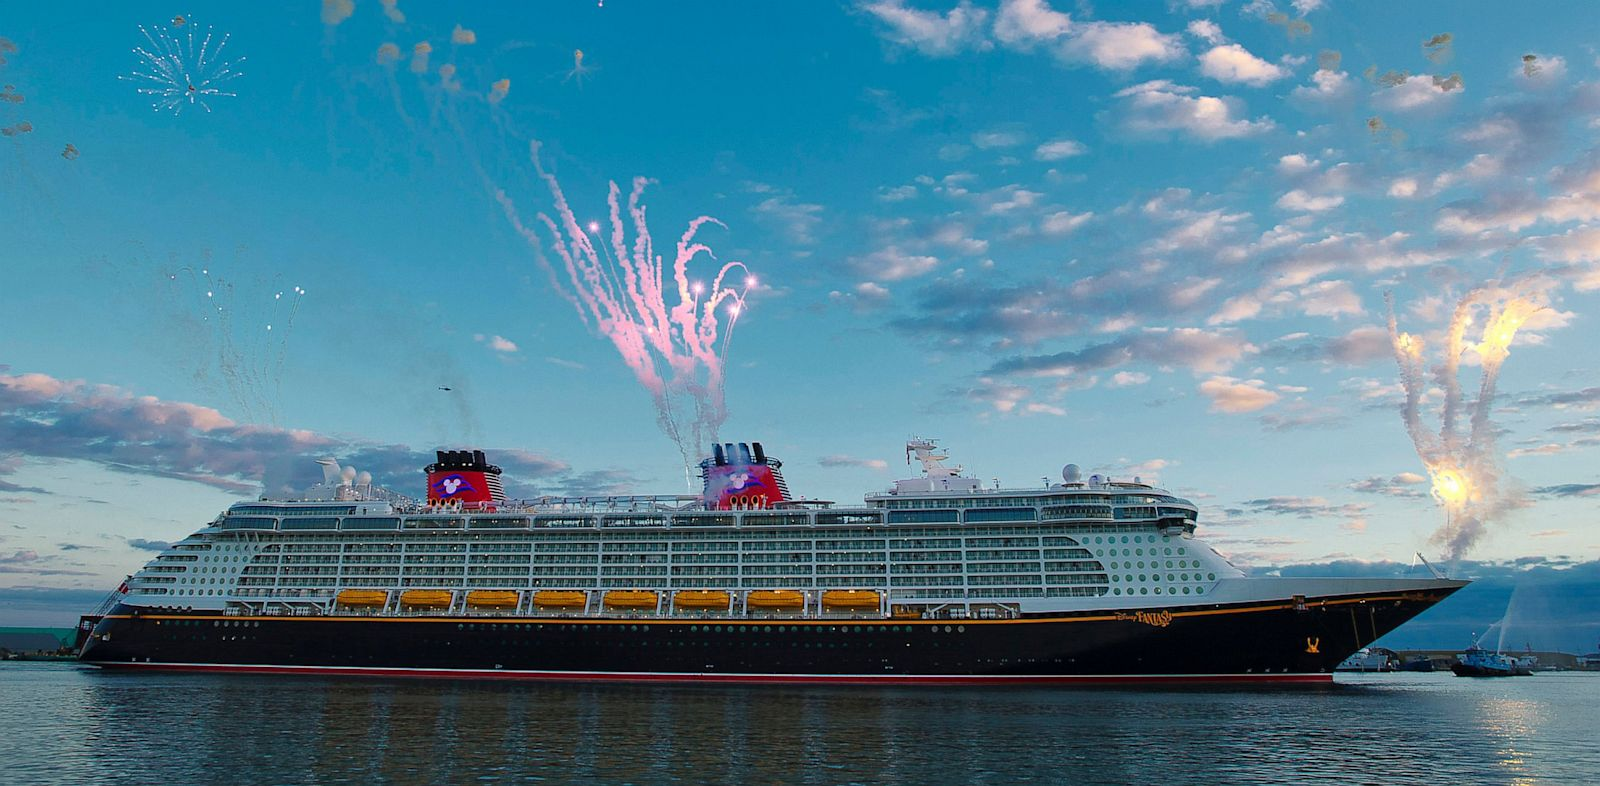 PHOTO: Disney Cruise Lines ranked highest in customer satisfaction among other cruise lines.